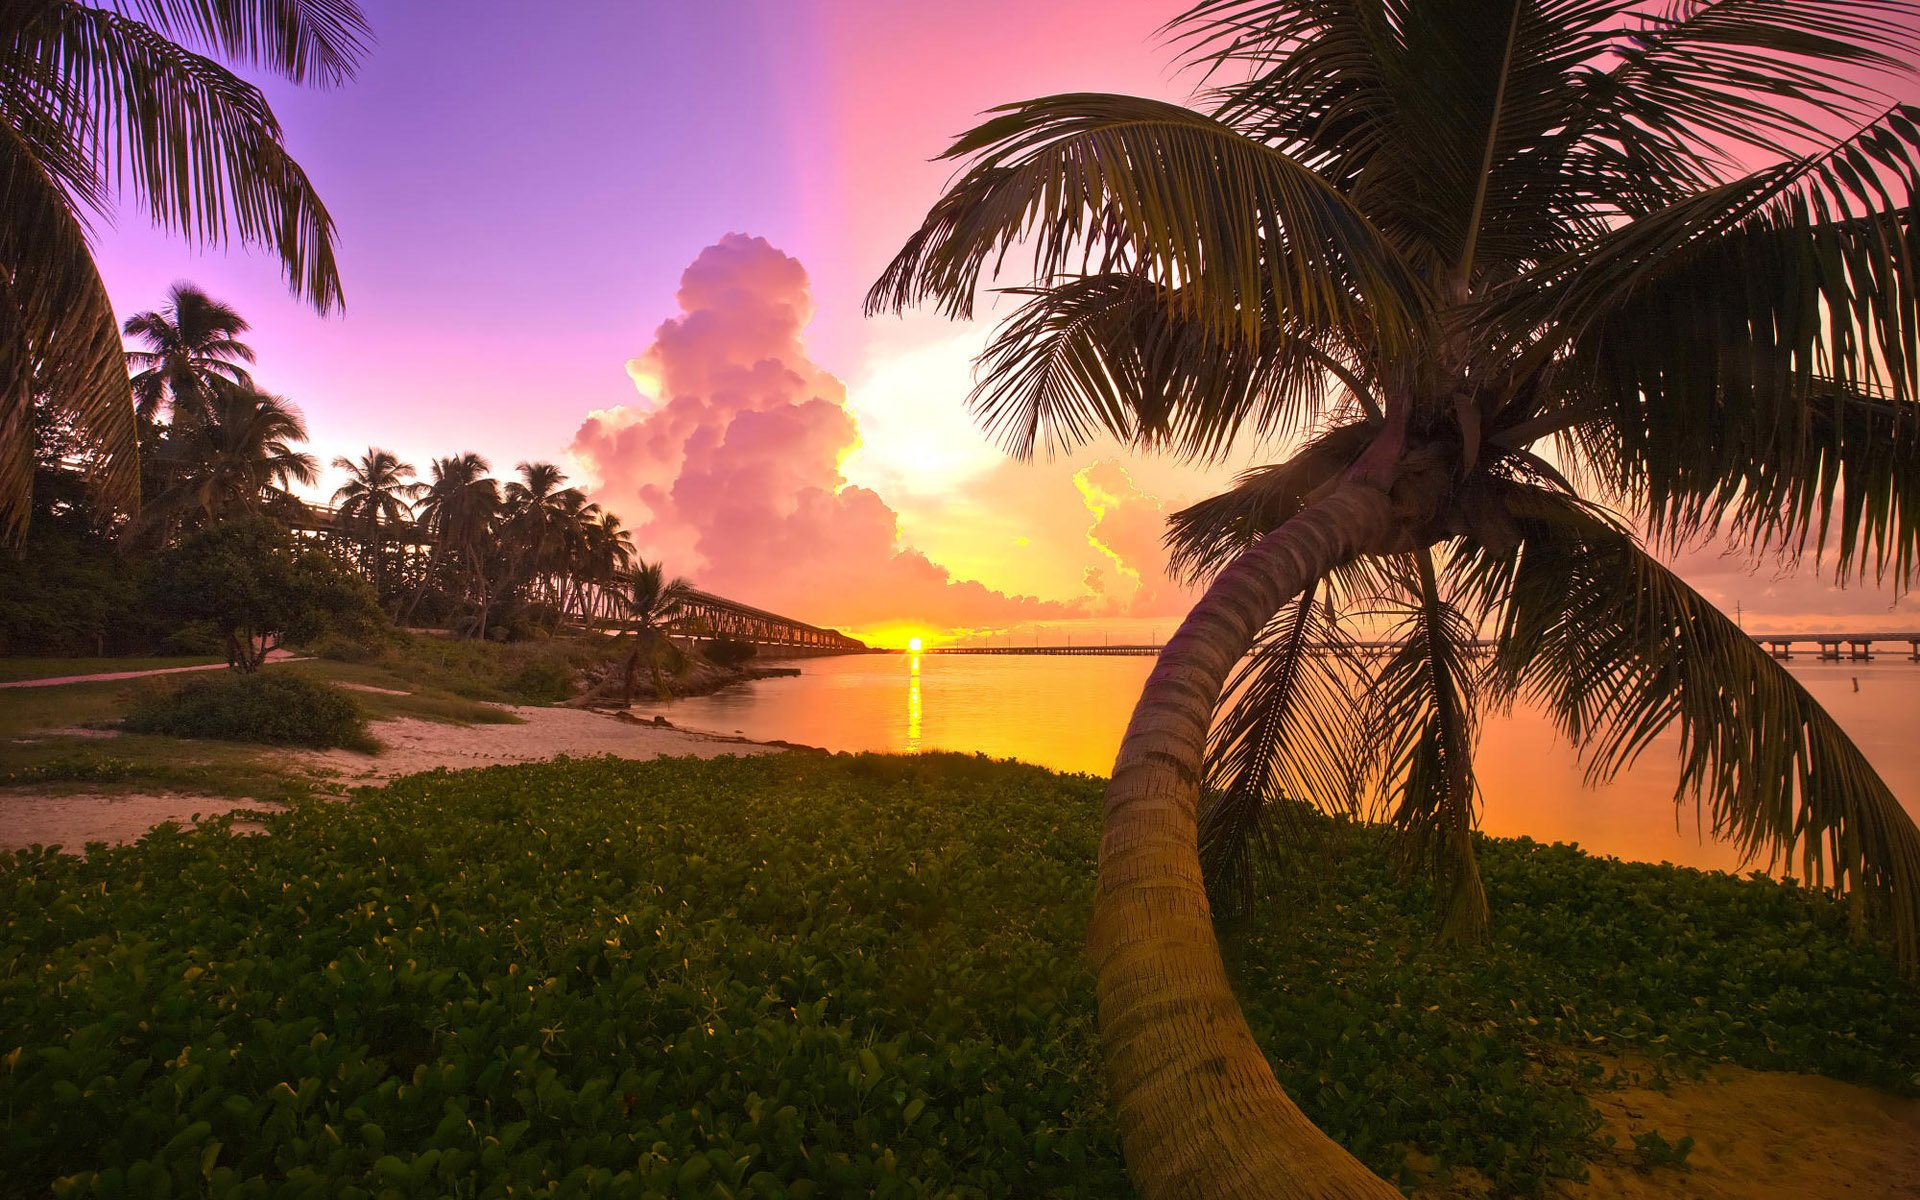 398673-Nature_Beach_palm_tree